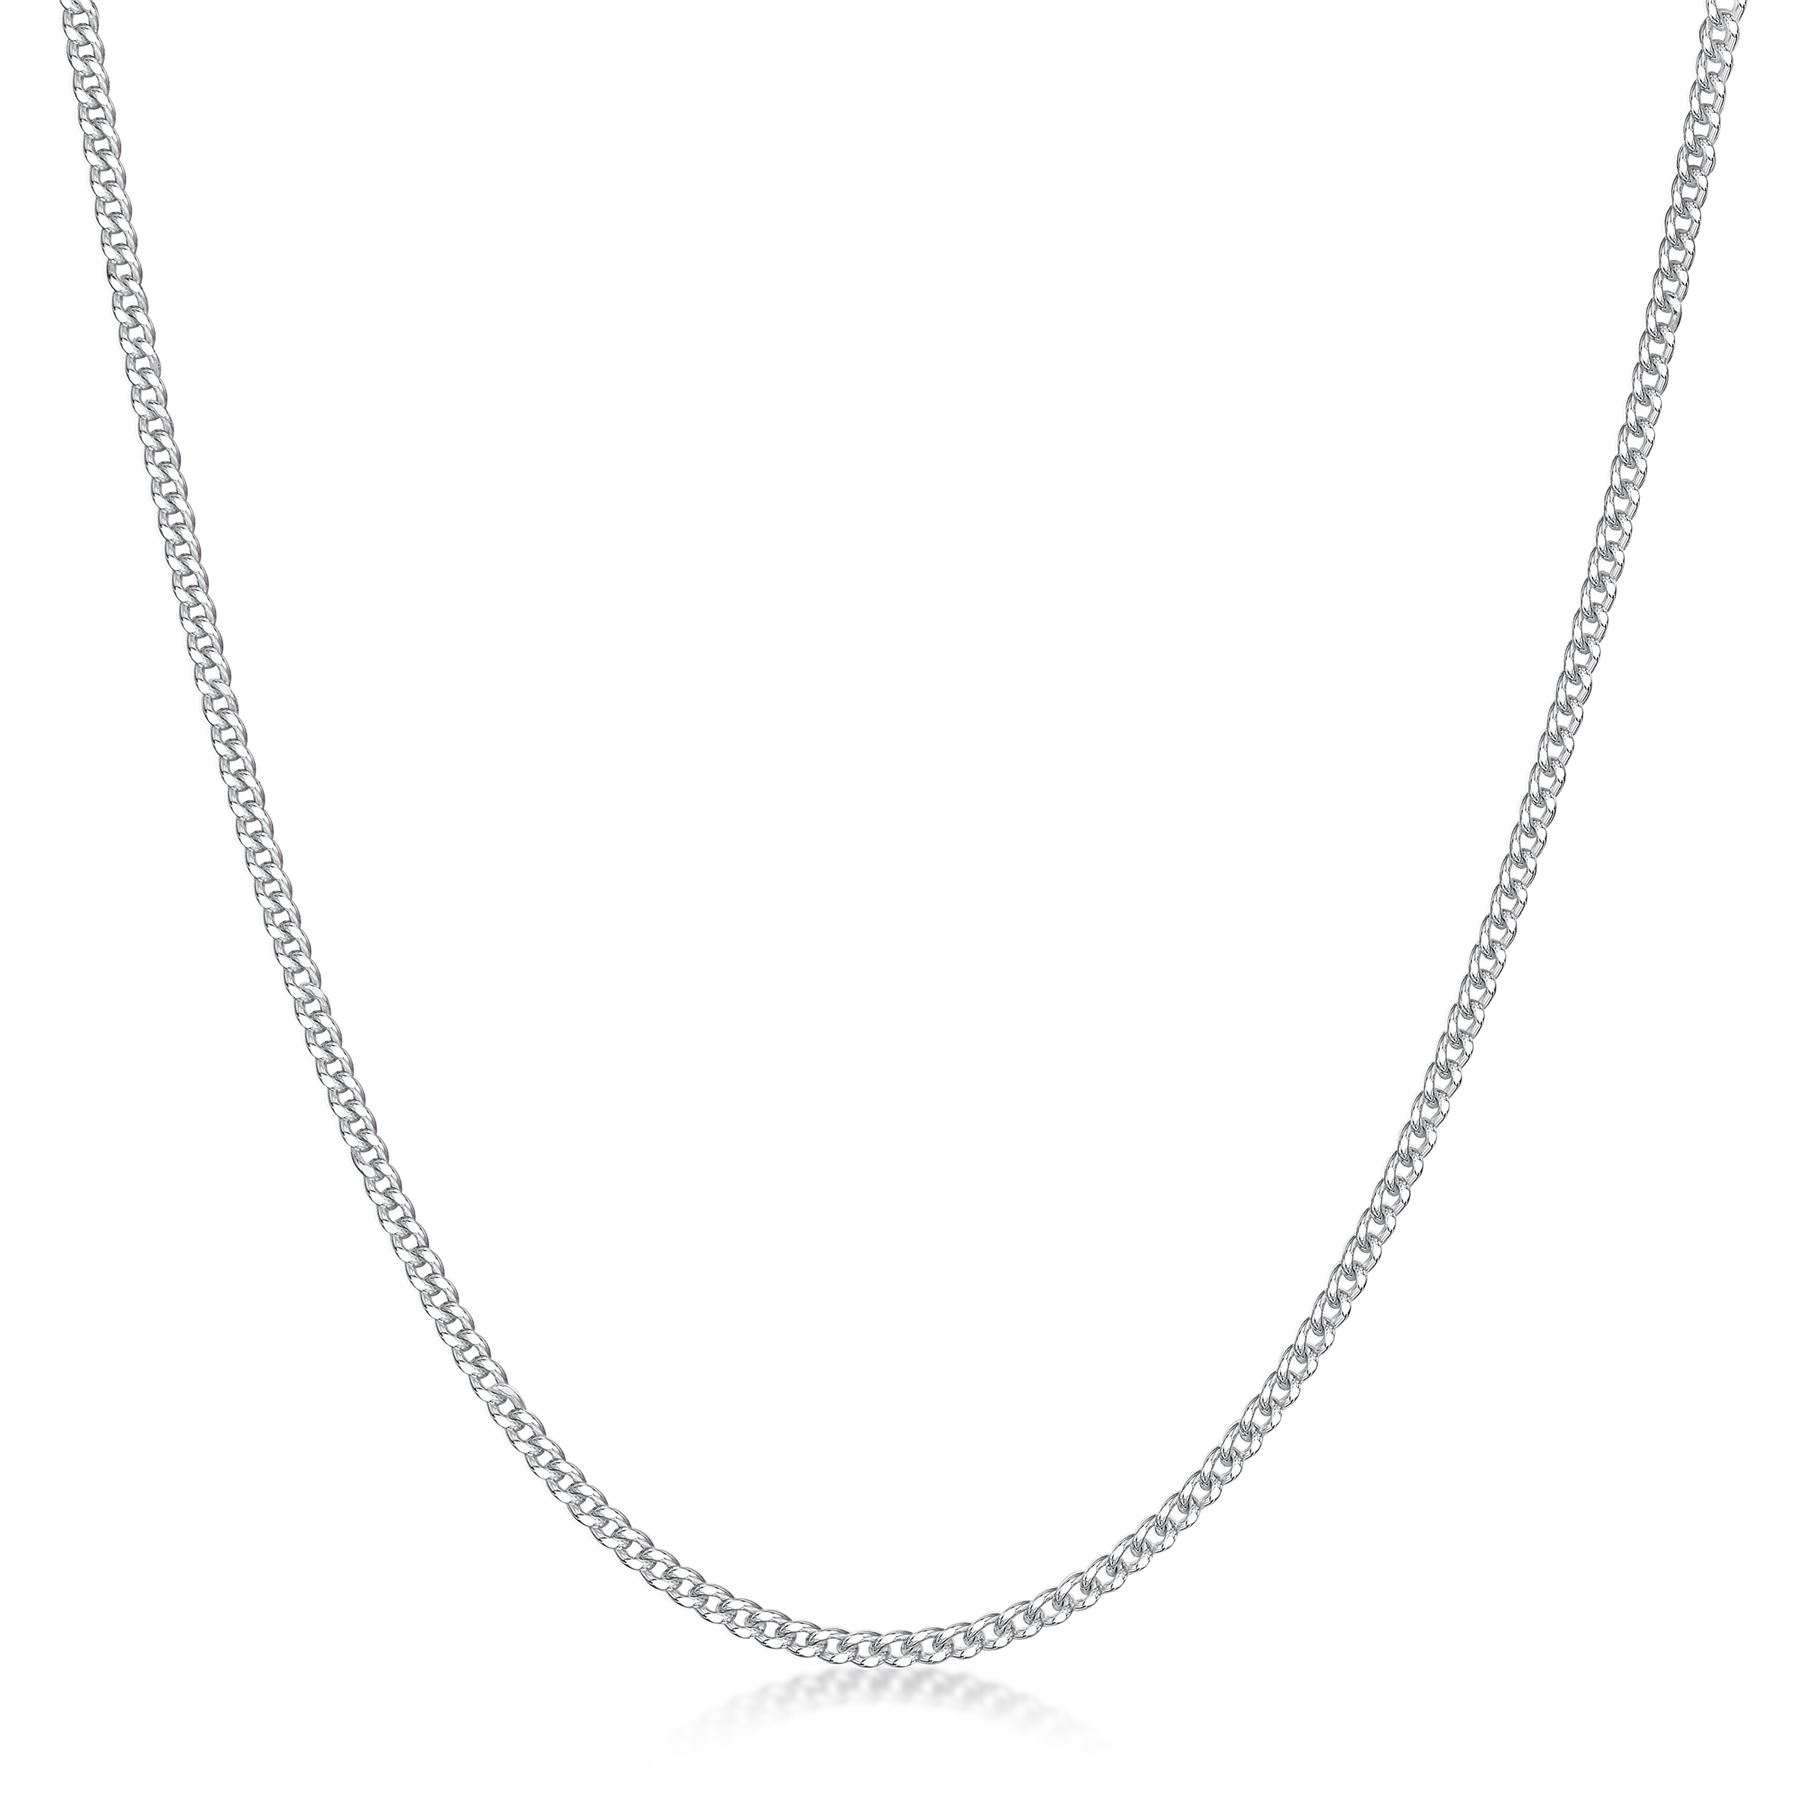 Amberta-Genuine-Real-925-Sterling-Silver-Long-Curb-Necklace-Chain-Made-in-Italy thumbnail 9